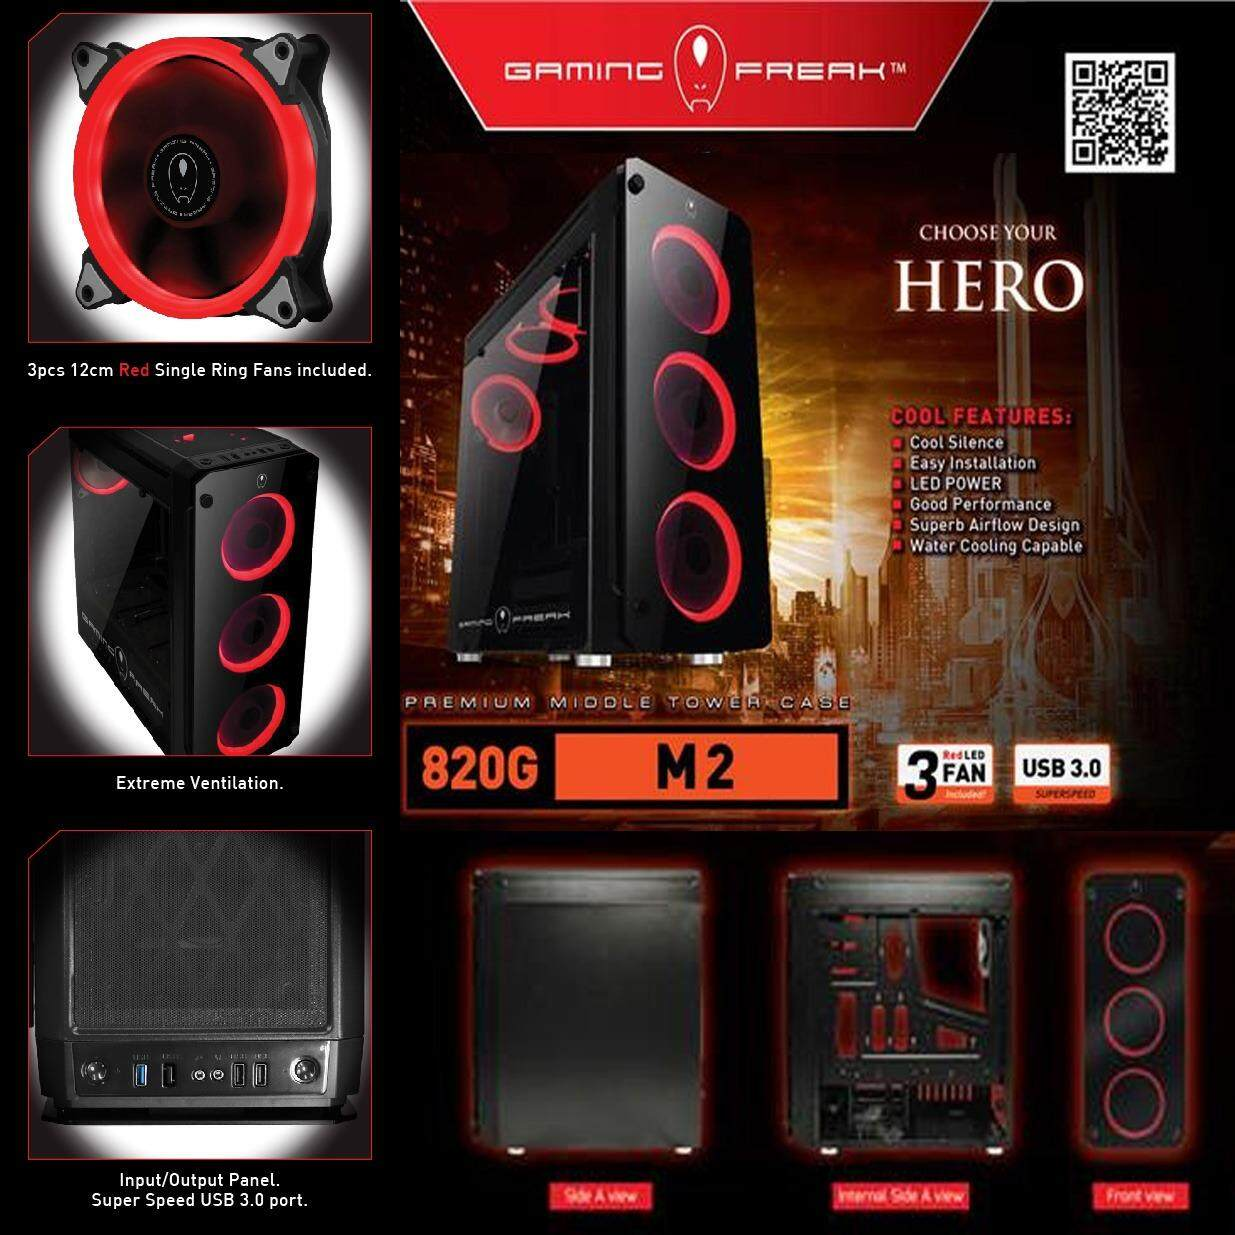 Official AVF Gaming Freak M2 820G Temper Glass Middle Tower Case (USB3.0) Malaysia